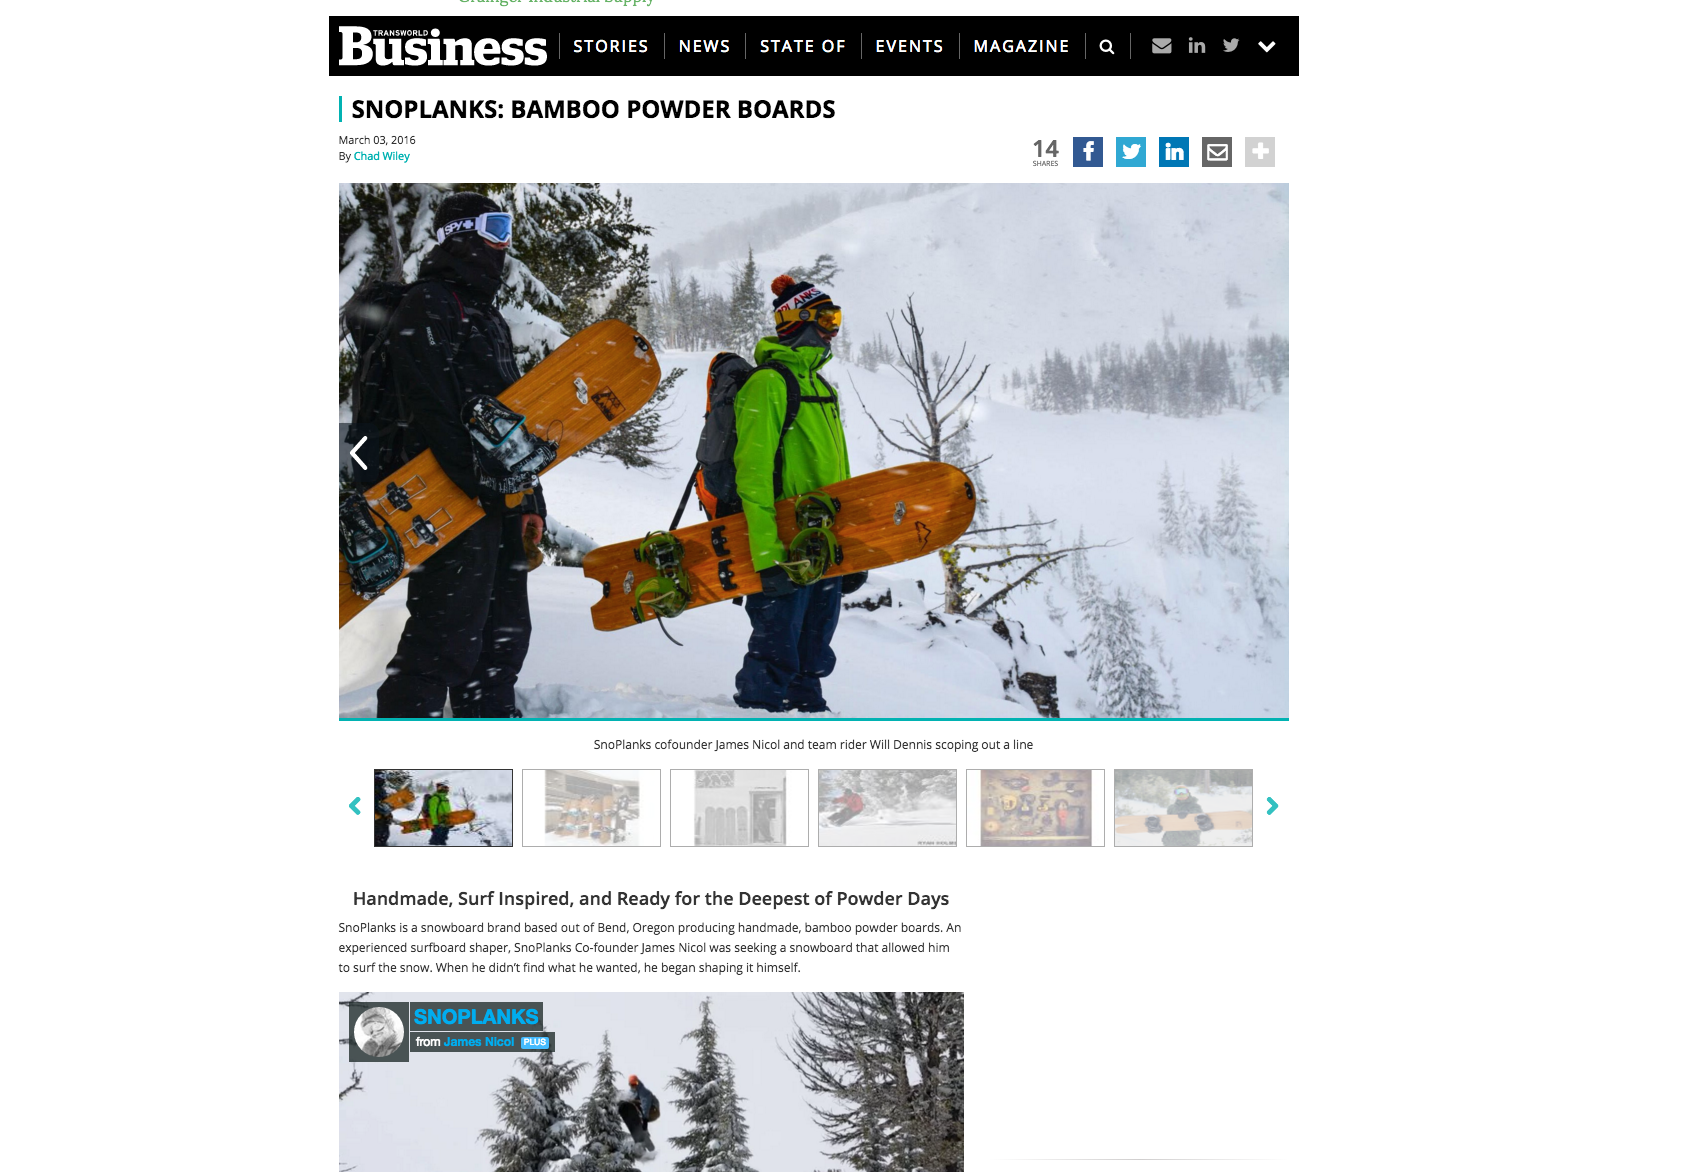 Transworld Business Interviews SnoPlanks